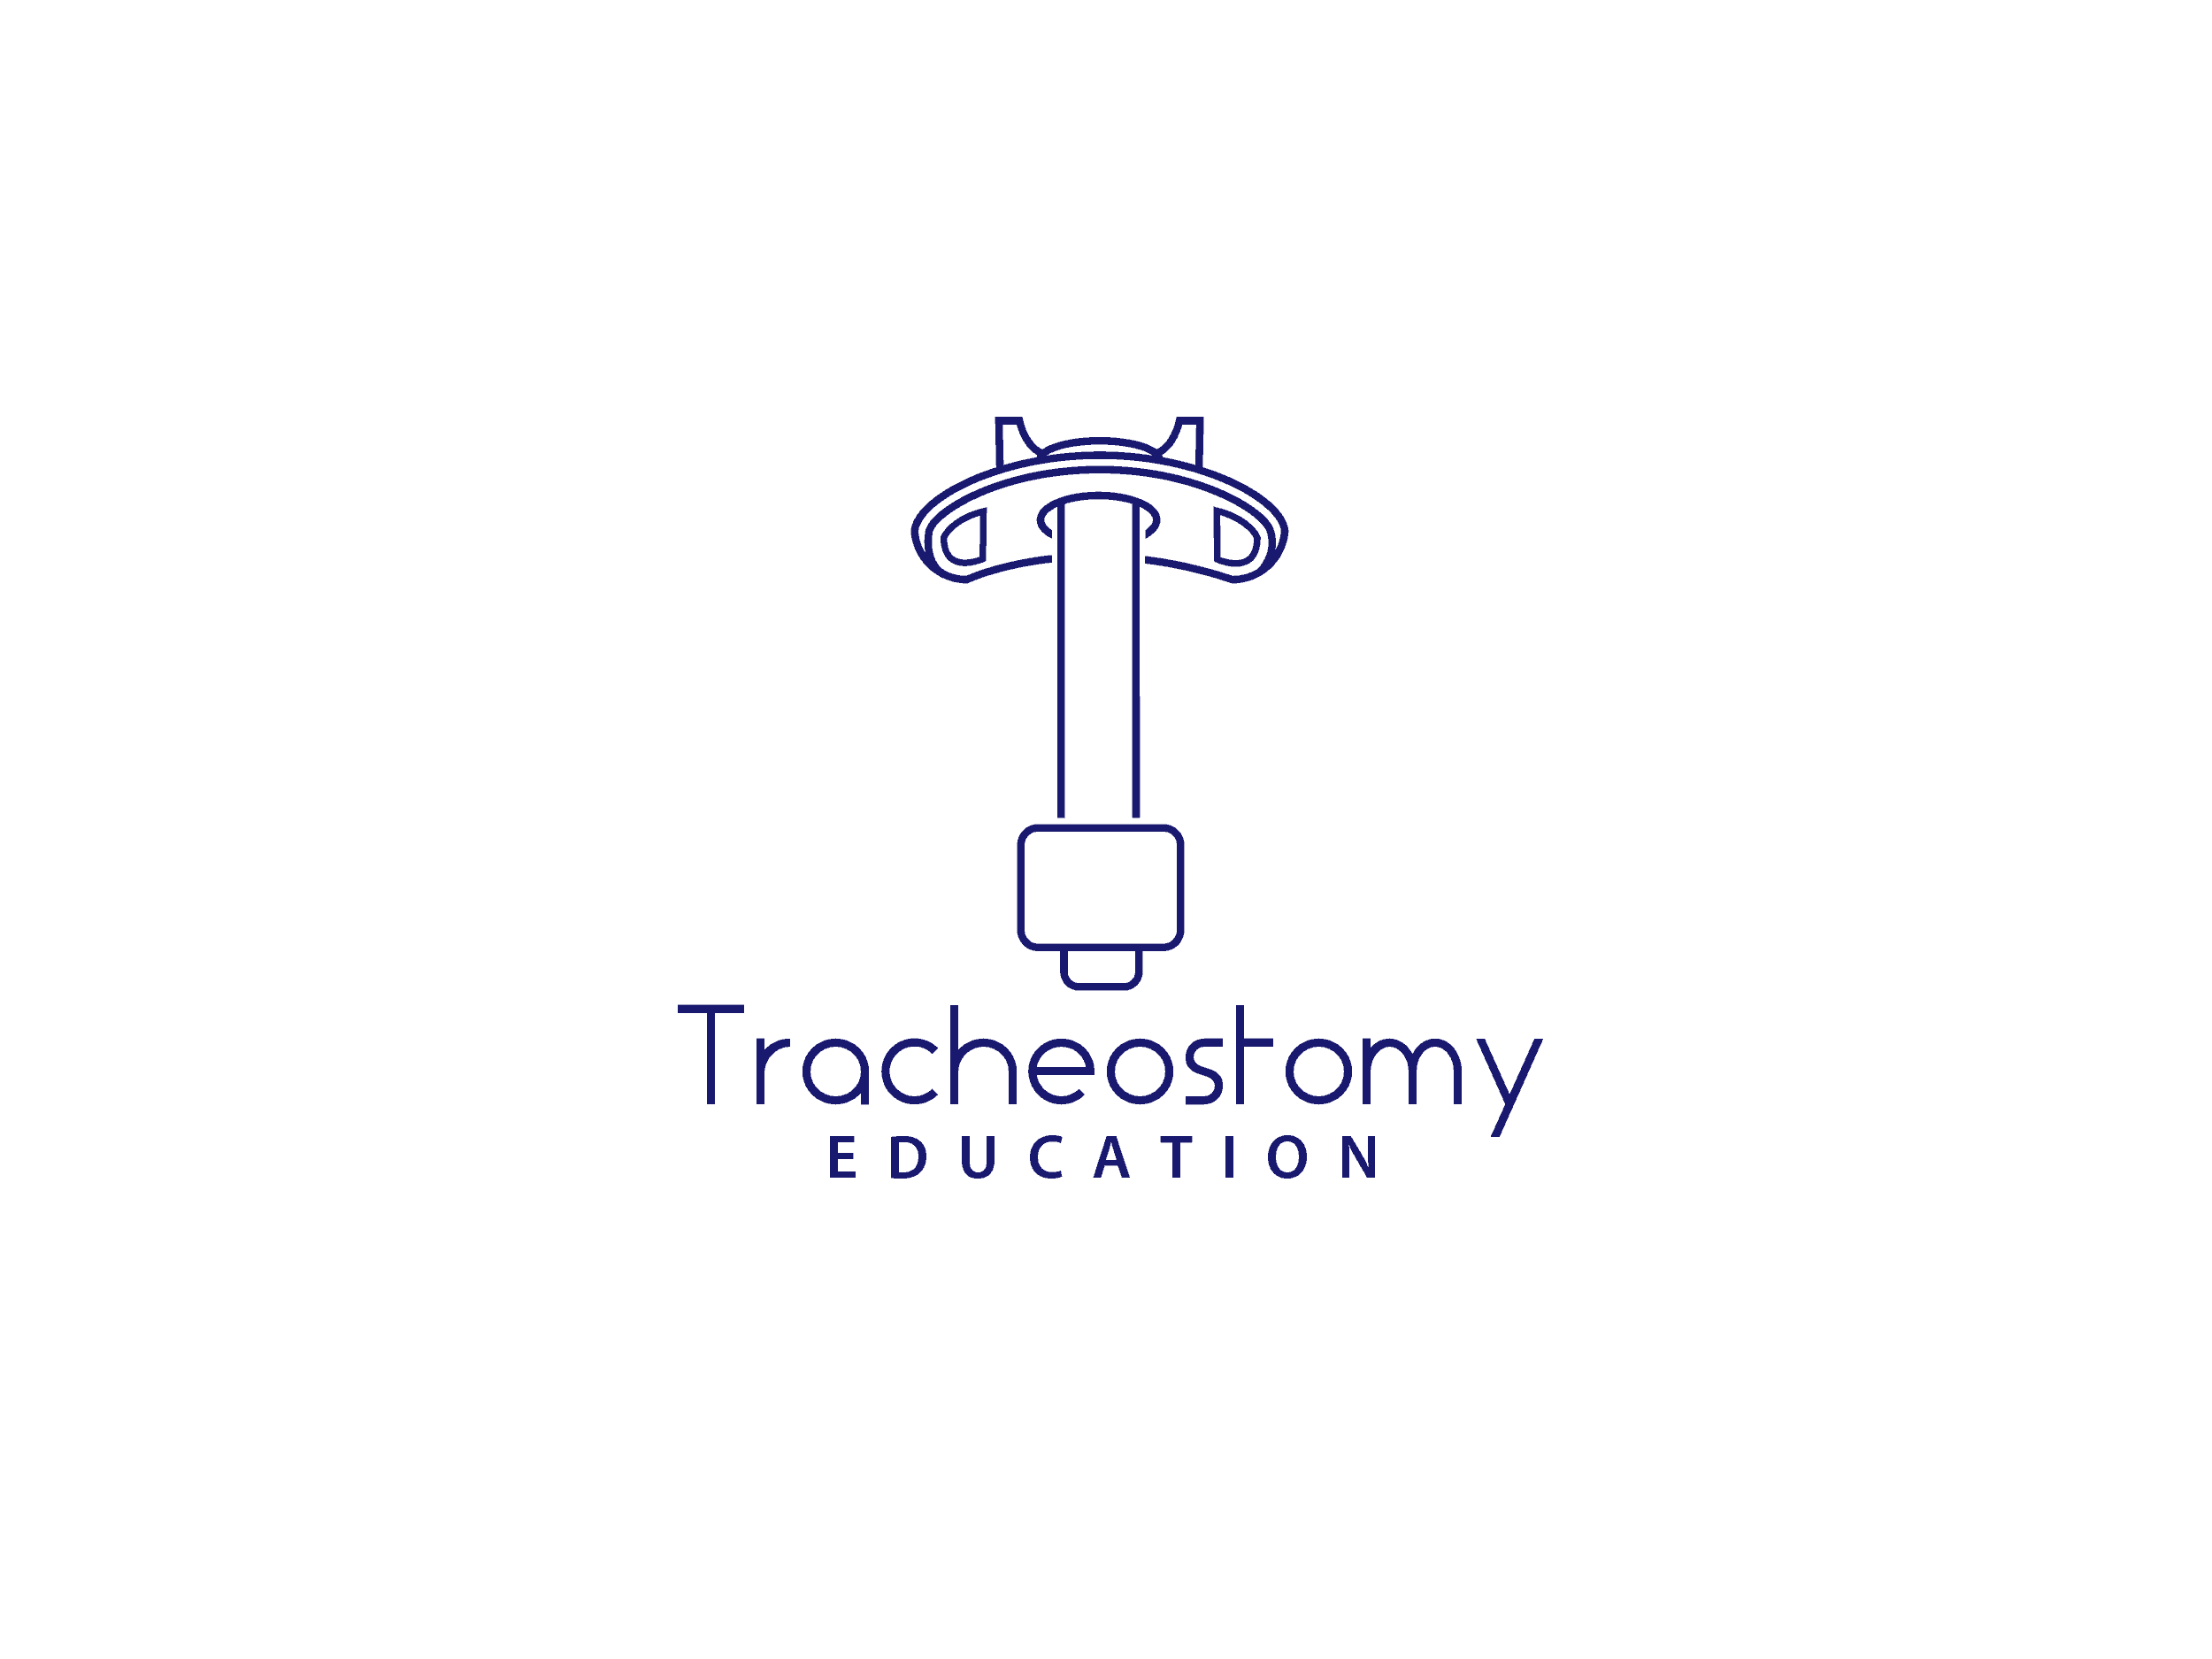 tracheostomy education logo